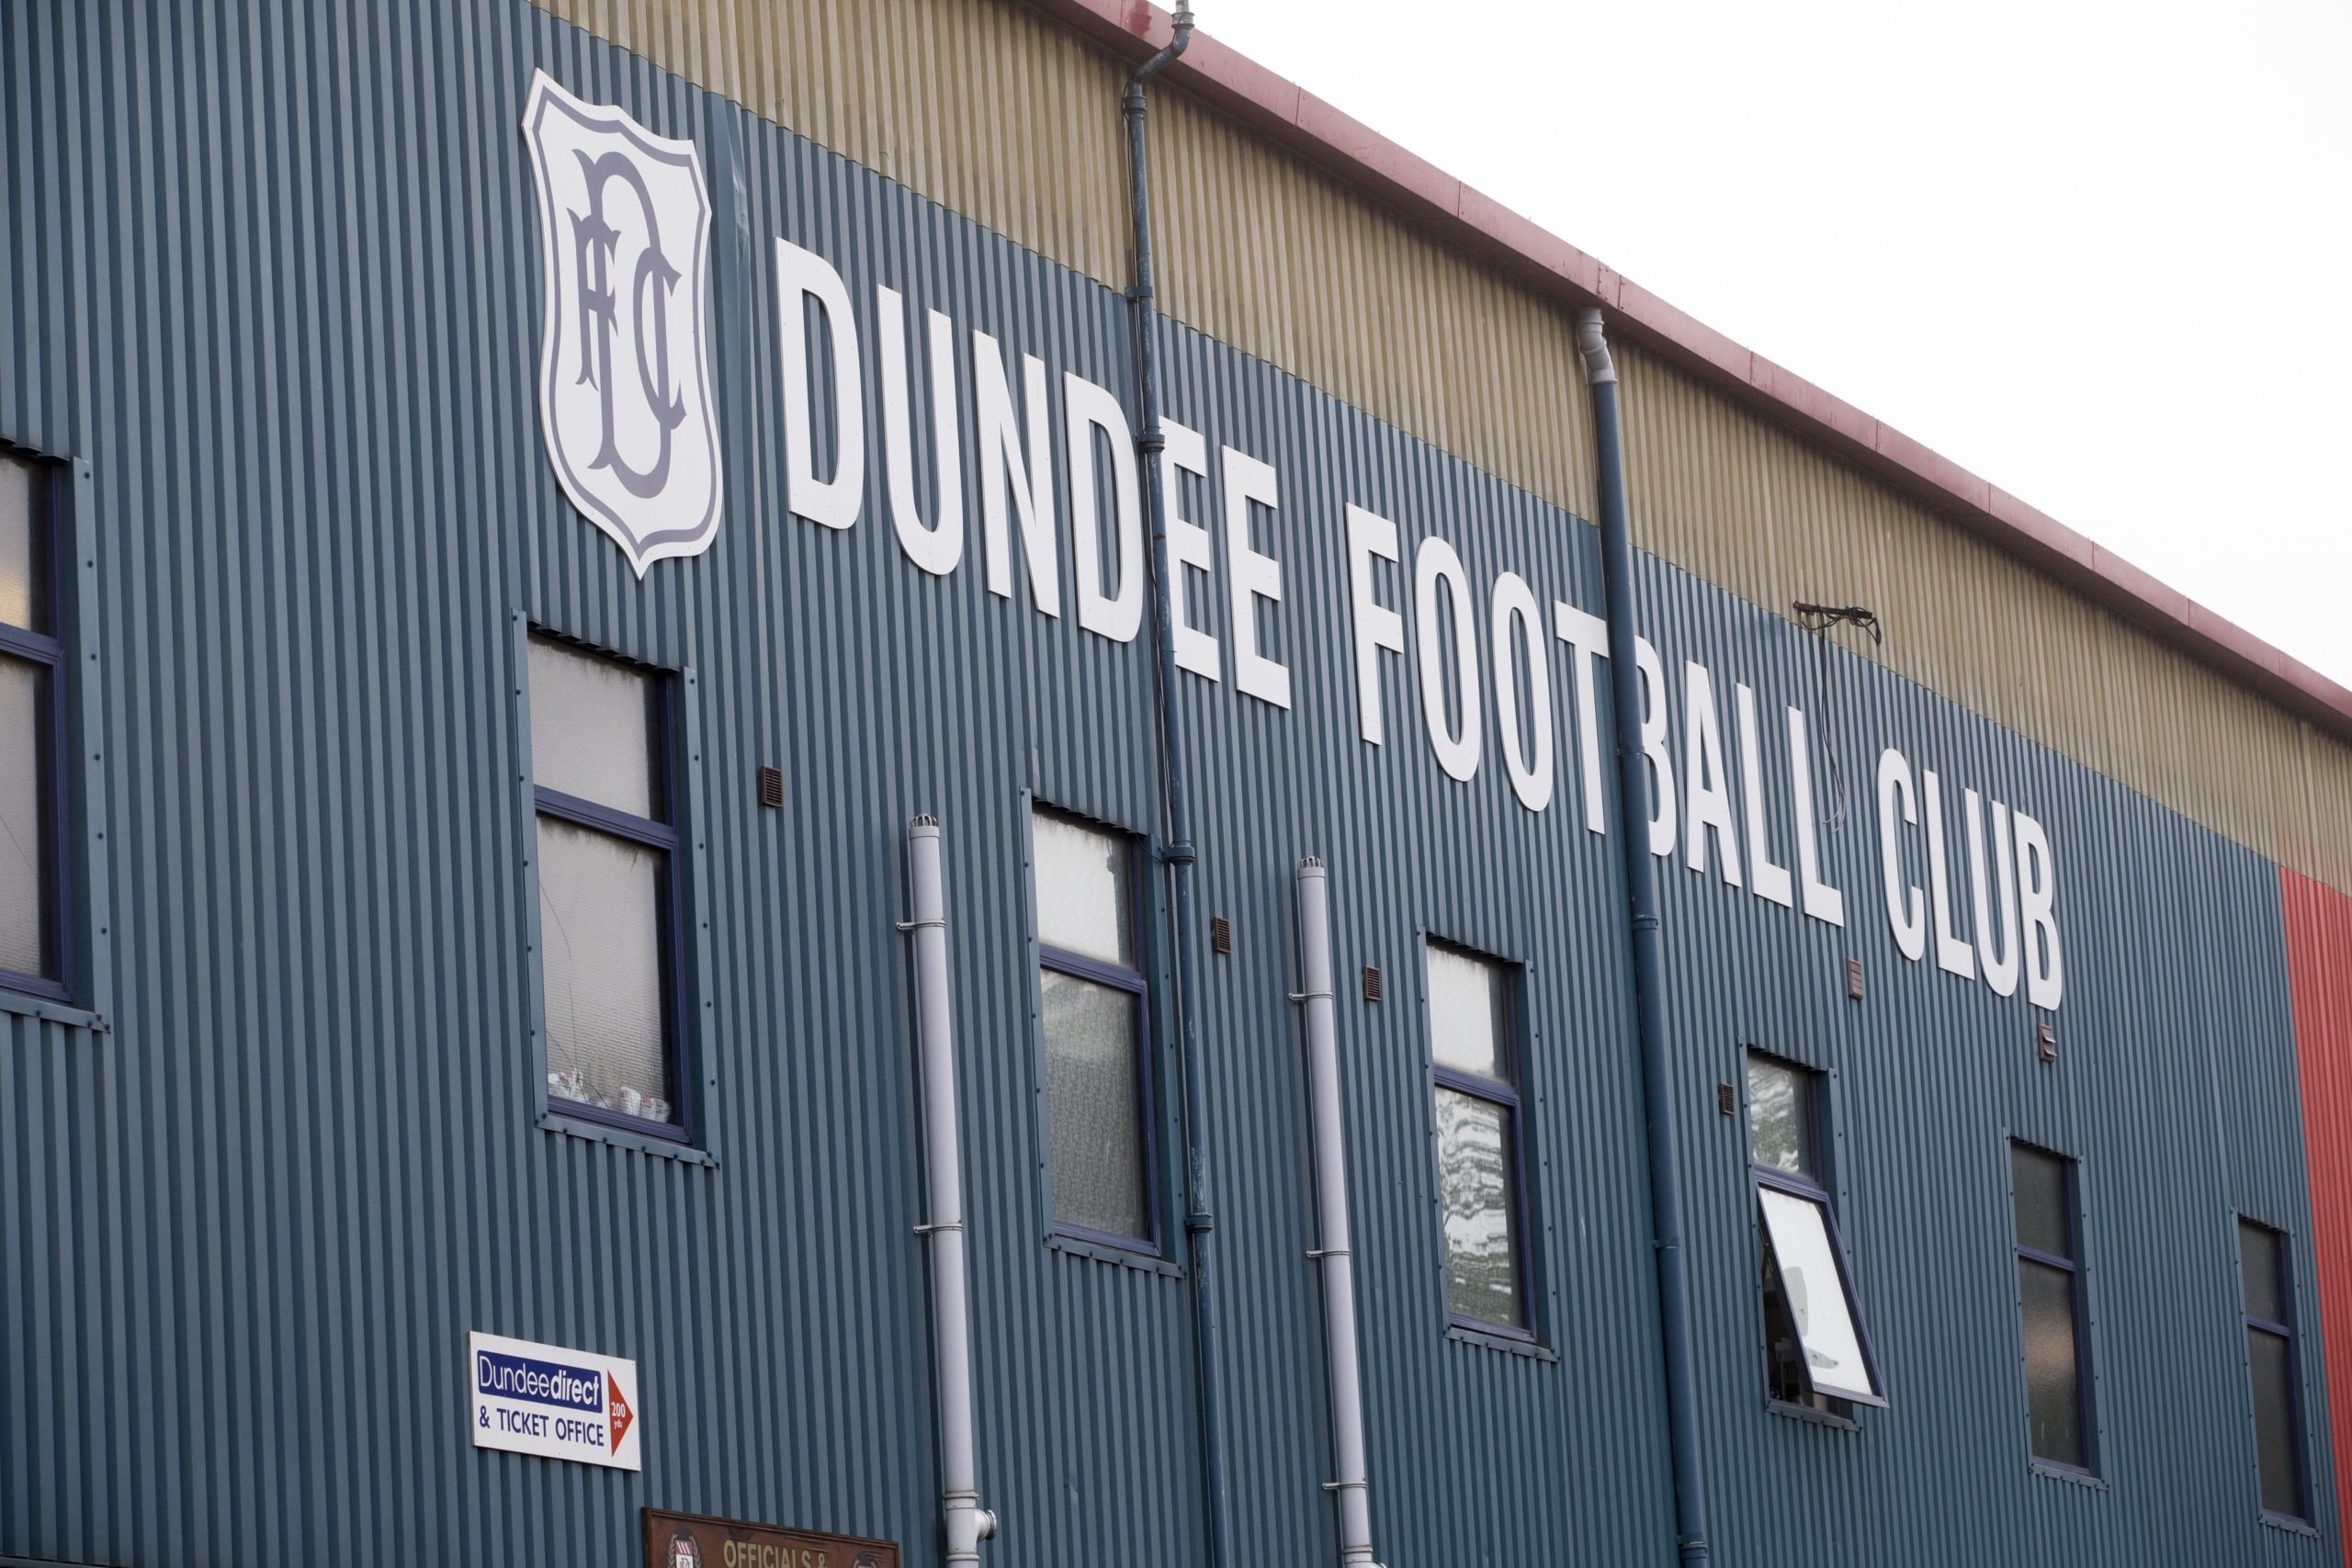 Dundee have done business with Celtic in the past